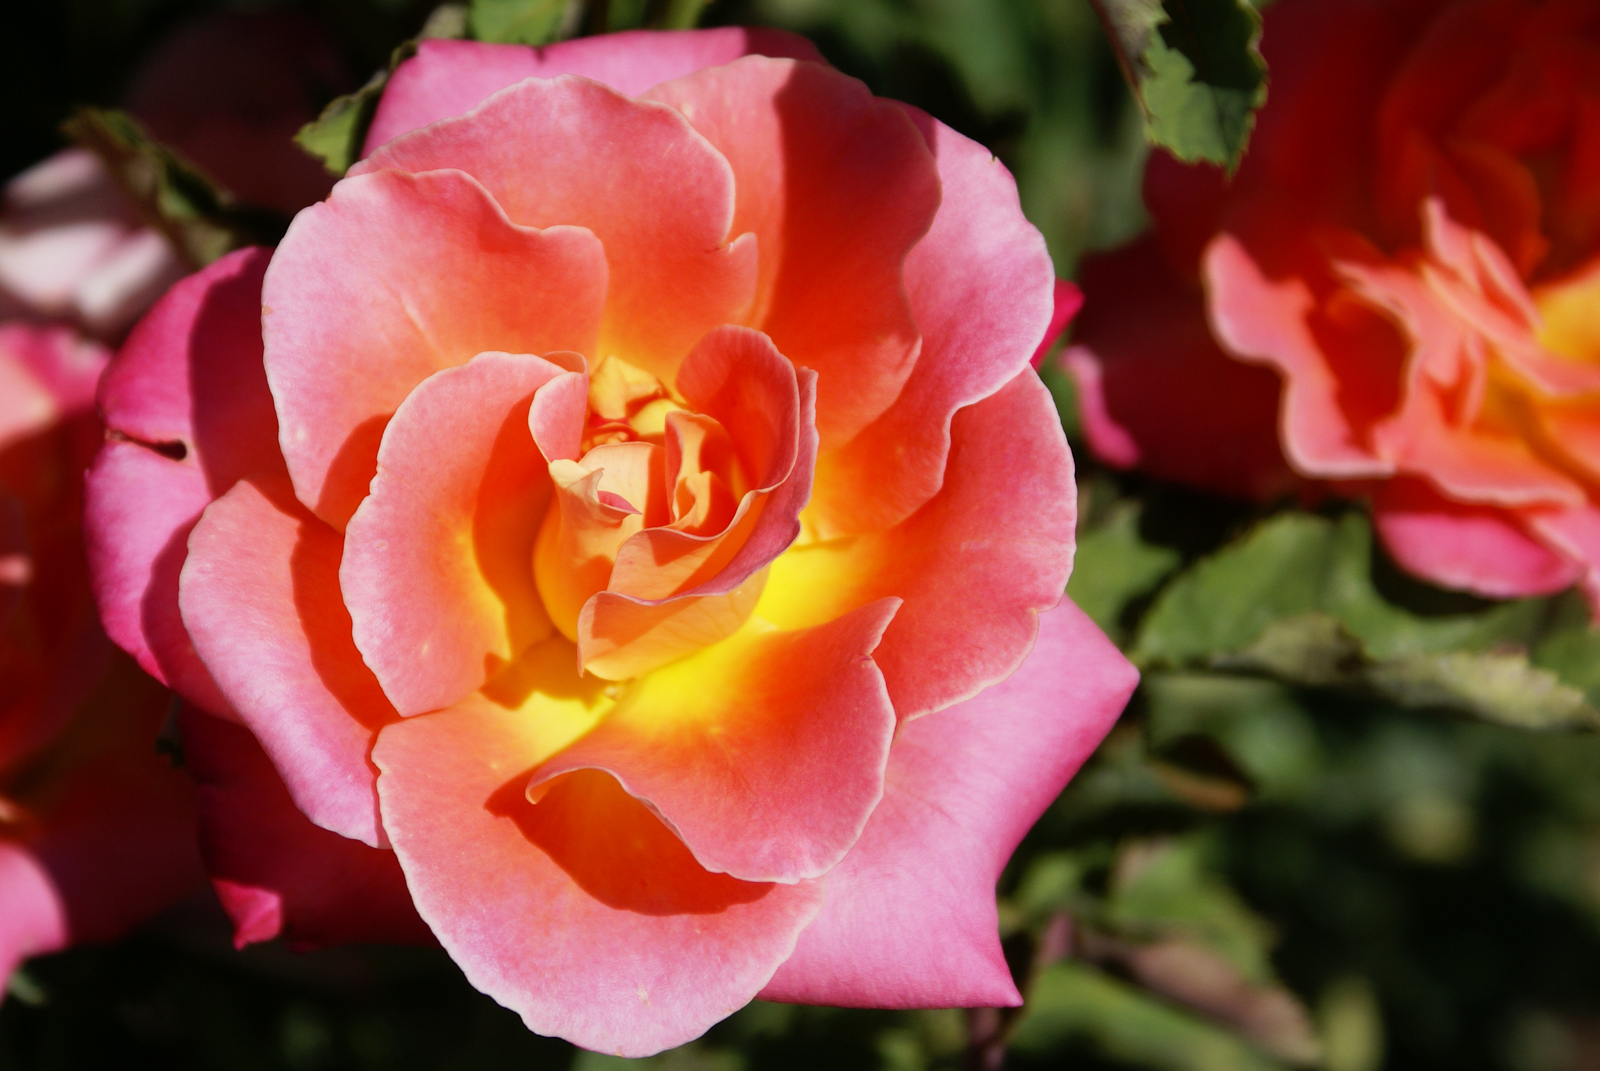 Rose Yellow Center With Orange And Pink Petals